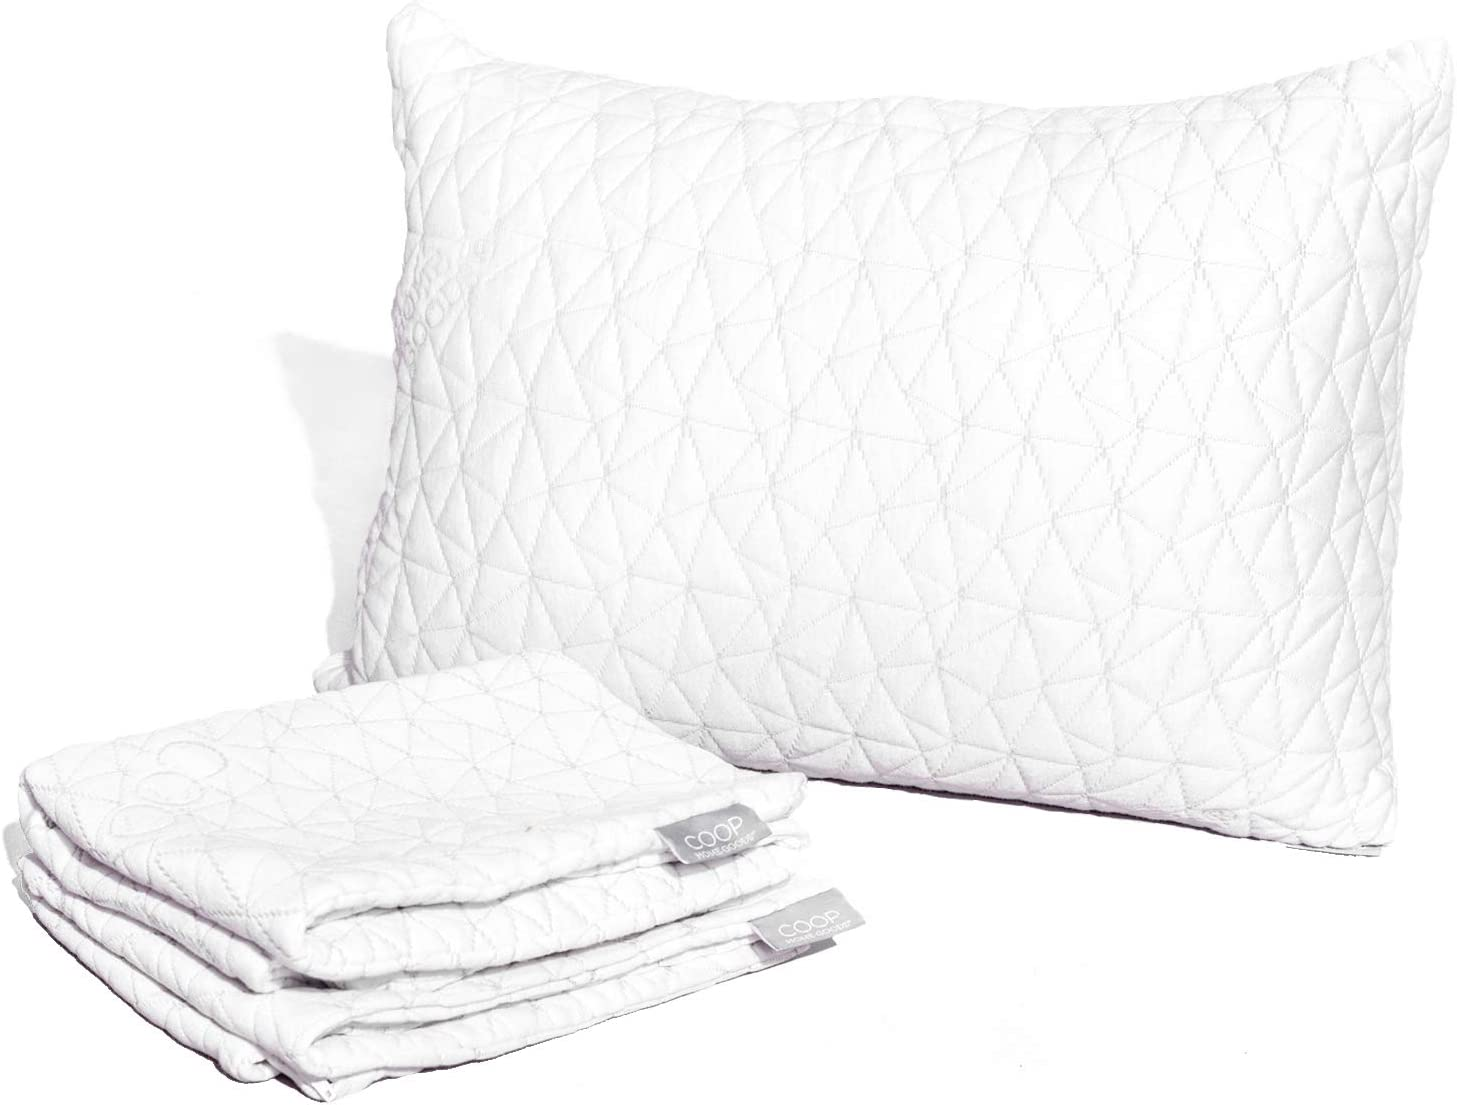 "Coop Home Goods - Breathable Ultra Soft Noiseless Pillowcase - Patented Lulltra Fabric from Bamboo Derived Viscose Rayon and Polyester Blend - Oeko-Tex Certified - King Size 20""x 36"""